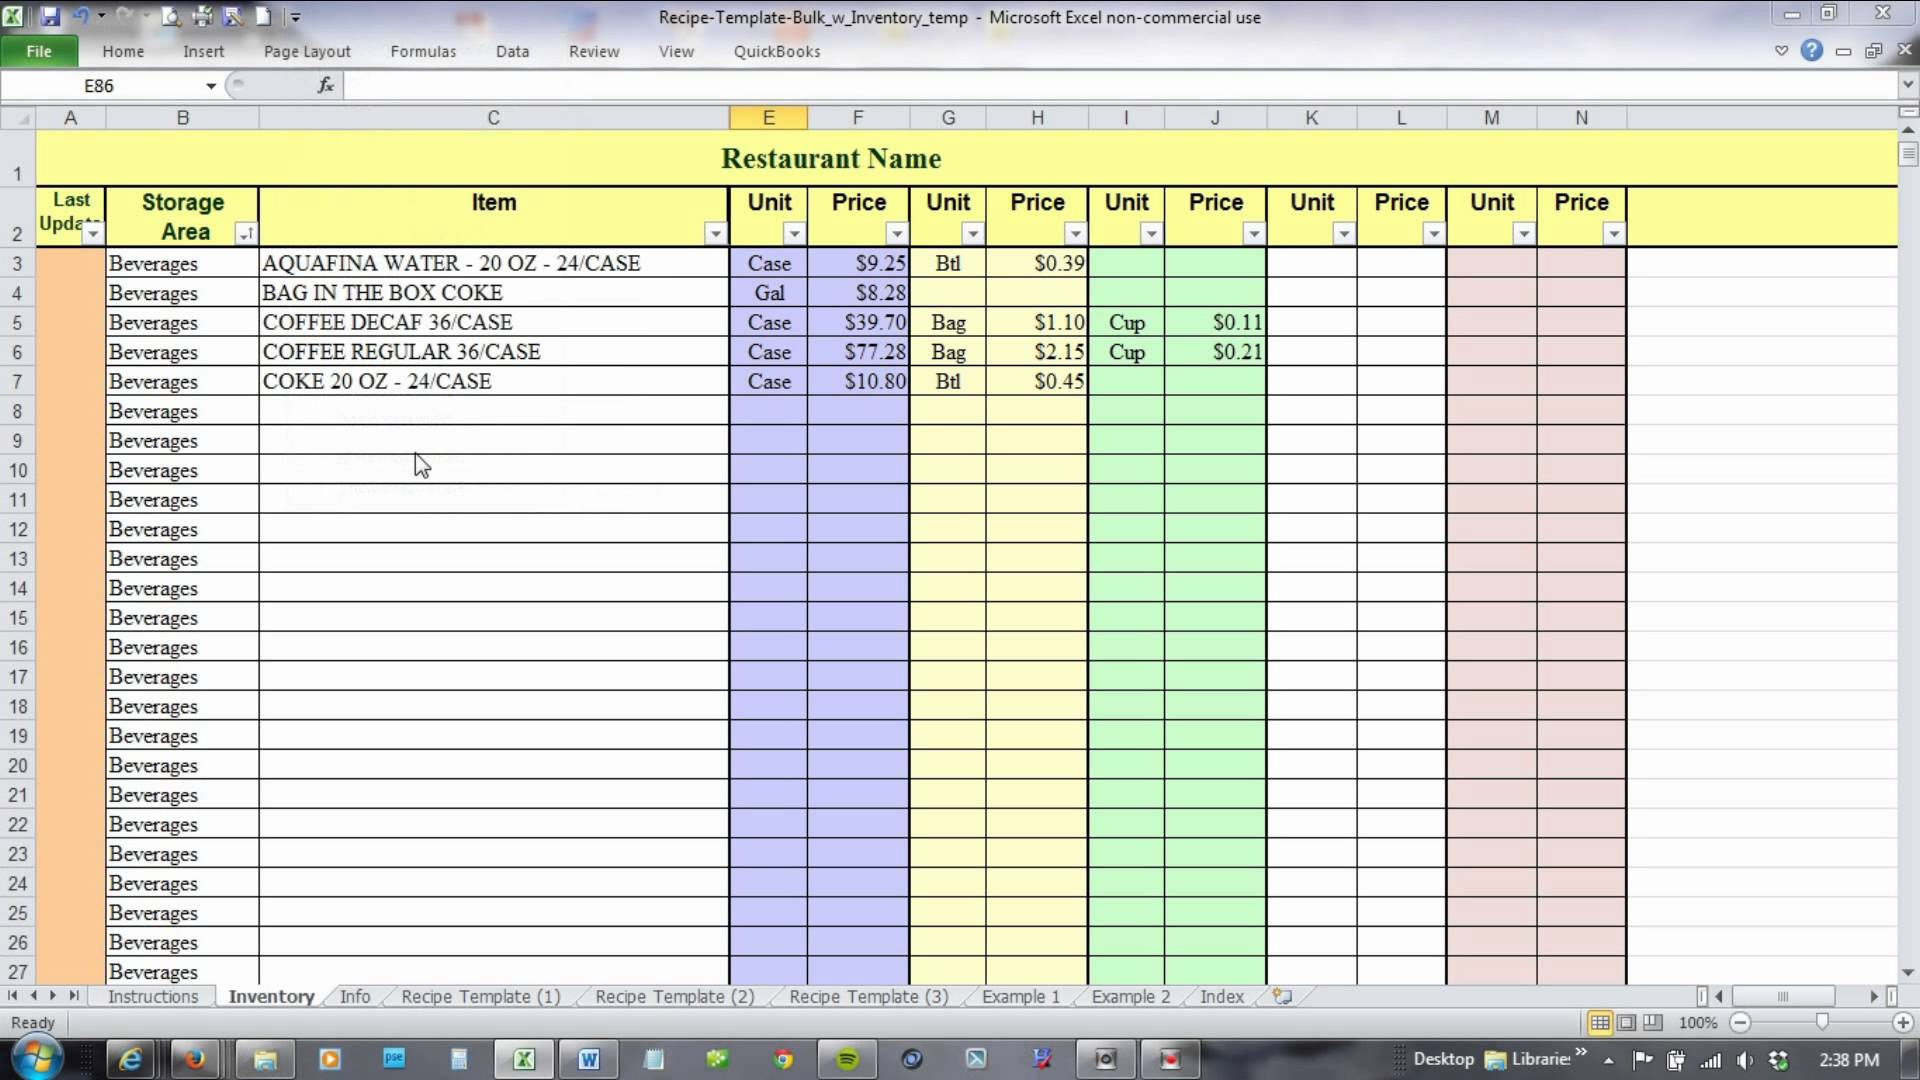 Food Cost Inventory Spreadsheet Free